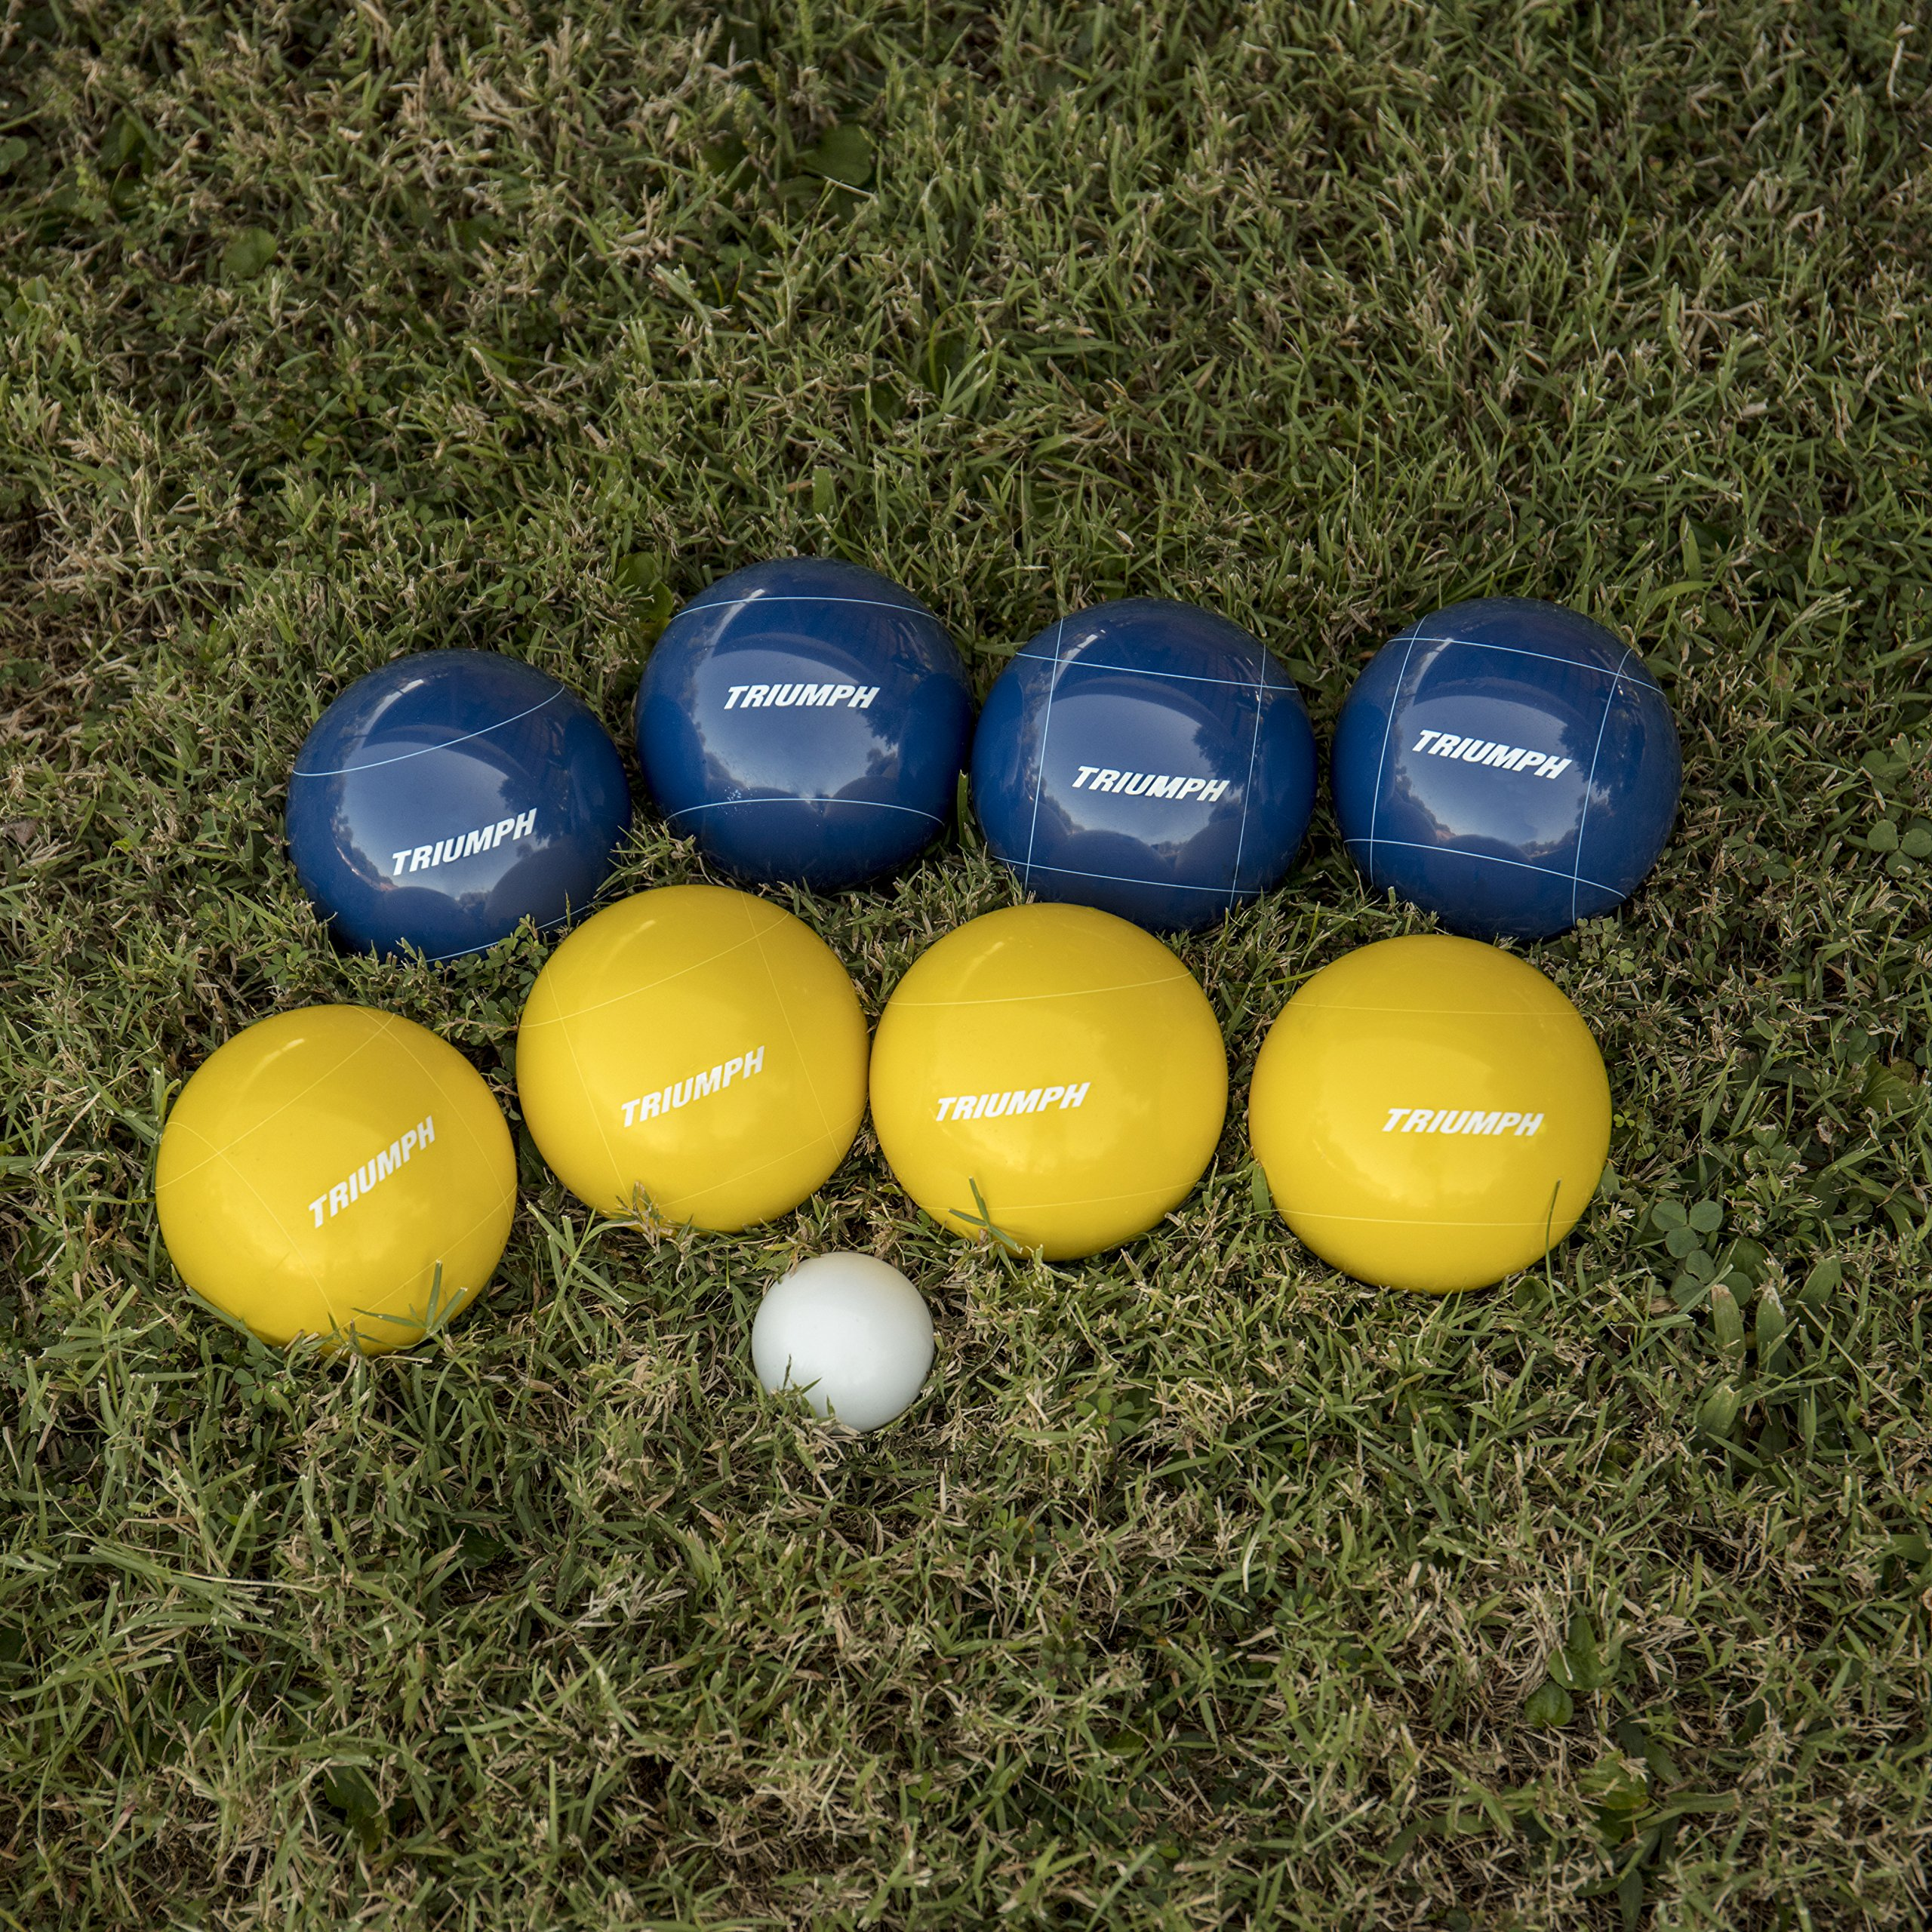 Triumph All Pro 100mm Bocce Set Includes Eight Bocce Balls, One 50mm Jack, and Carry Bag by Triumph Sports (Image #8)